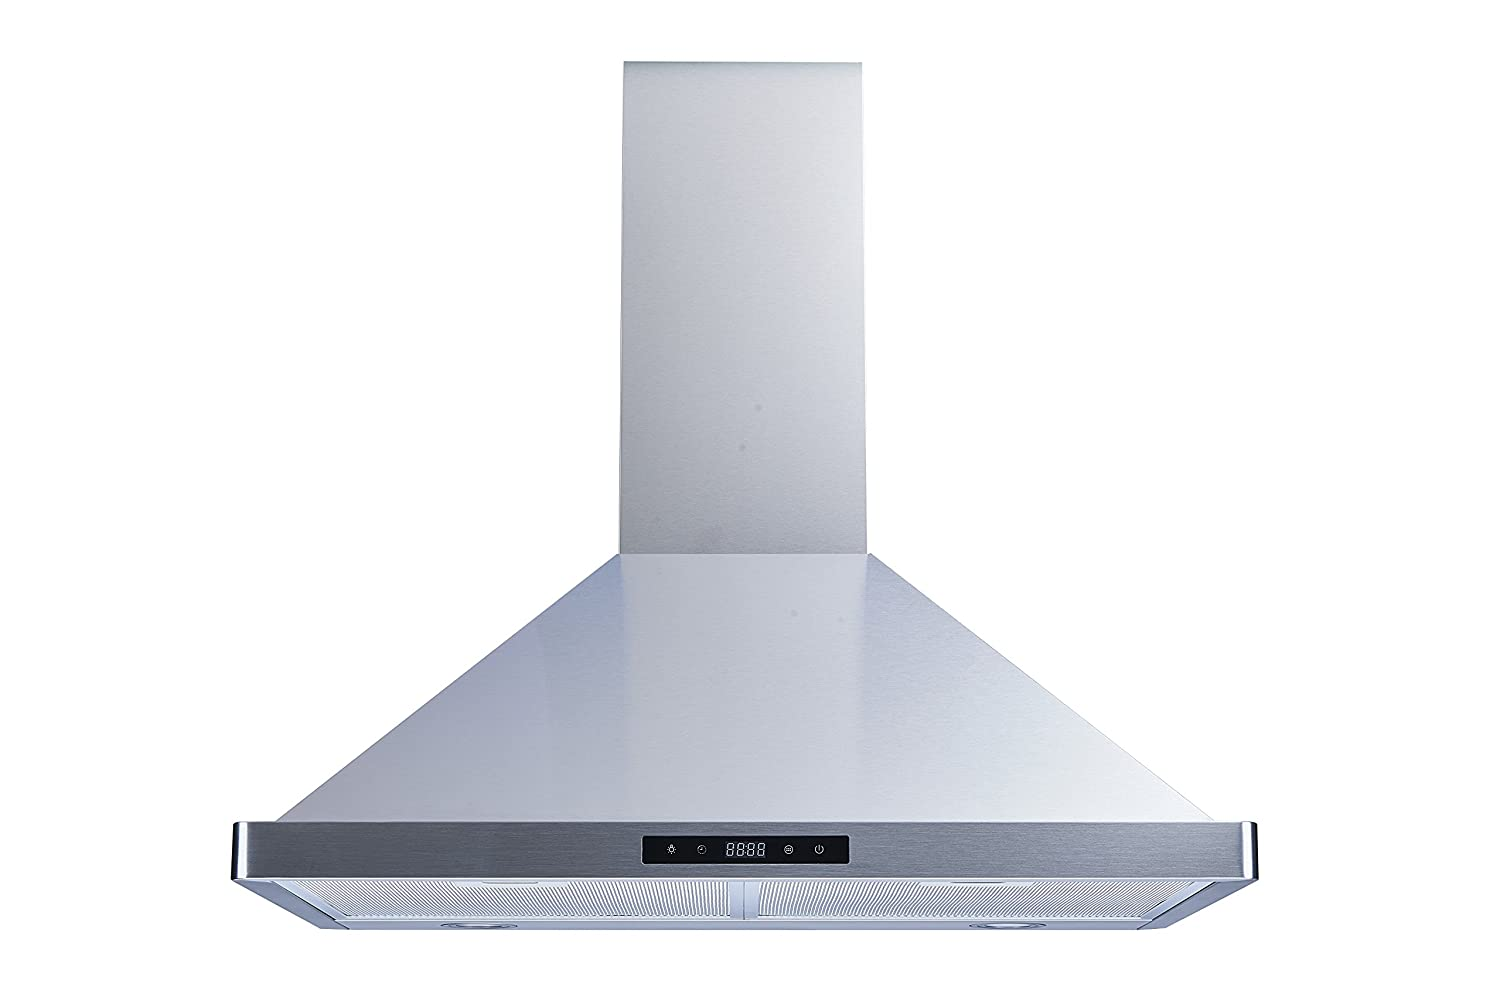 Winflo 30 Wall Mount Stainless Steel Convertible Kitchen Range Hood with 450 CFM Air Flow, Touch Control, Aluminum Filters and LED Lights Winslyn W103B30